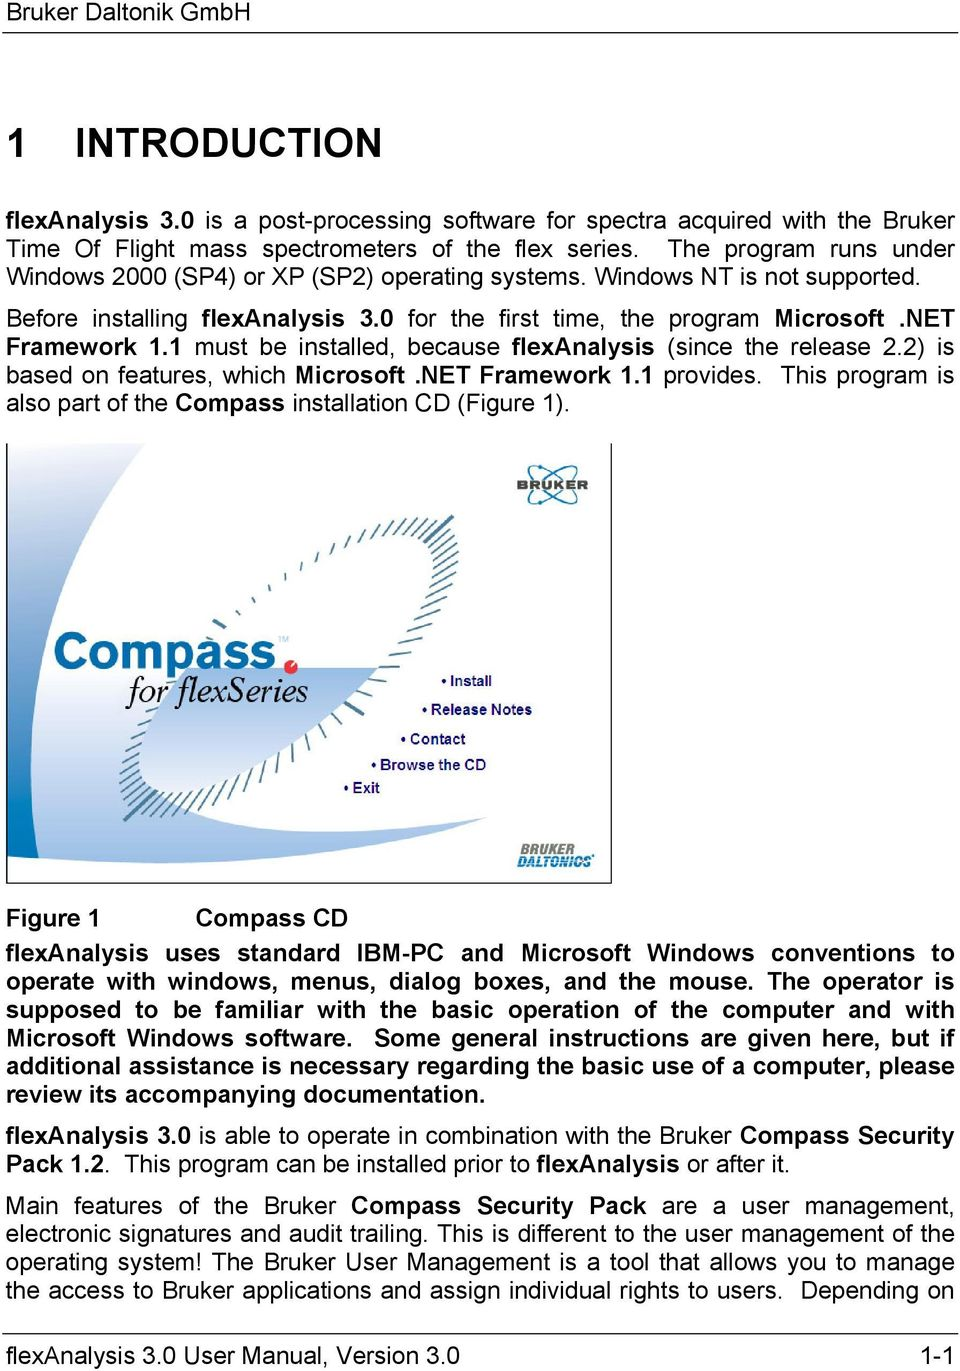 1 must be installed, because flexanalysis (since the release 2.2) is based on features, which Microsoft.NET Framework 1.1 provides. This program is also part of the Compass installation CD (Figure 1).